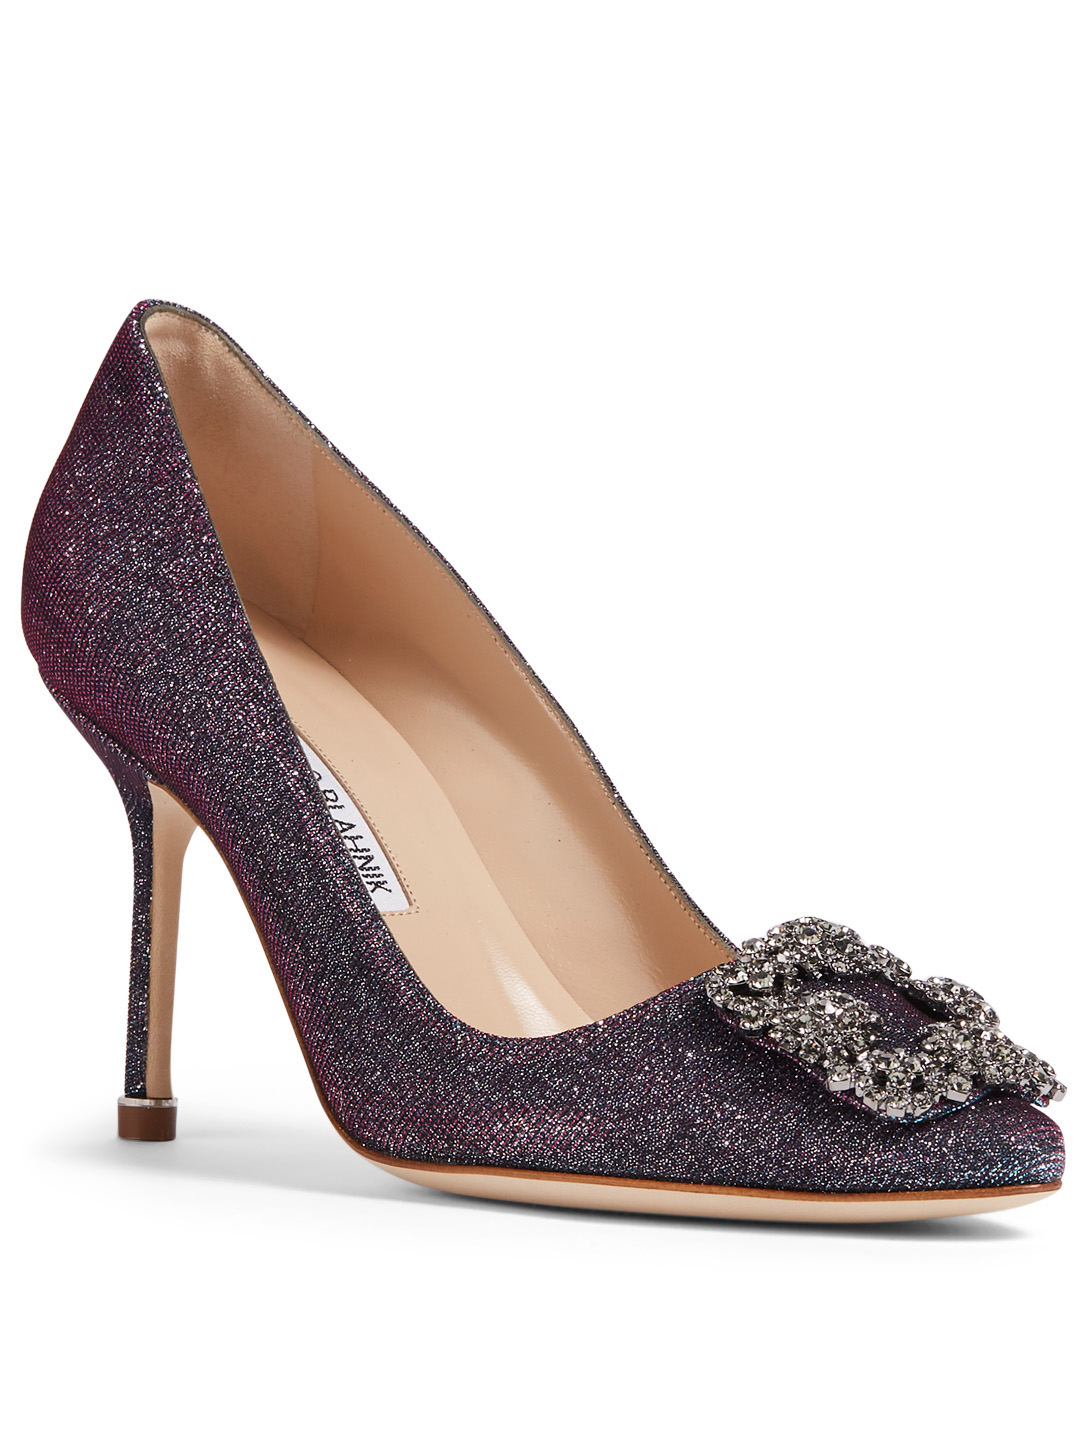 MANOLO BLAHNIK Hangisi 90 Pumps With Crystal Buckle Women's Purple